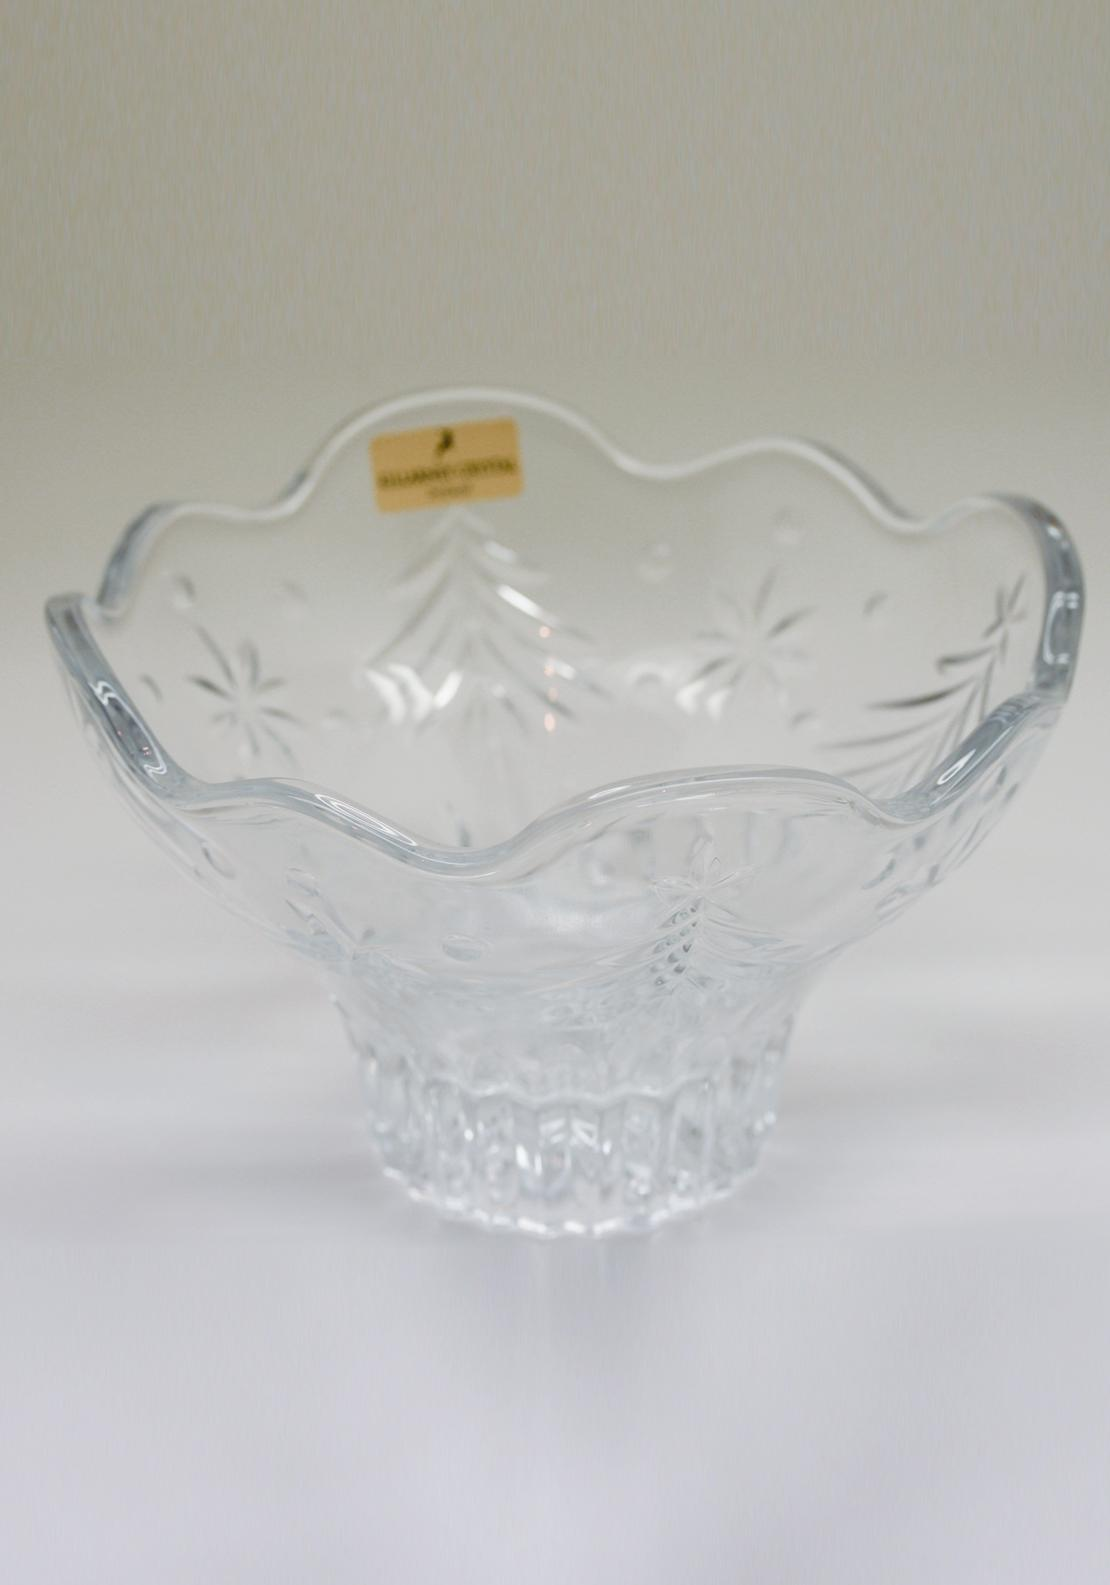 Killarney Crystal Starlight Bowl